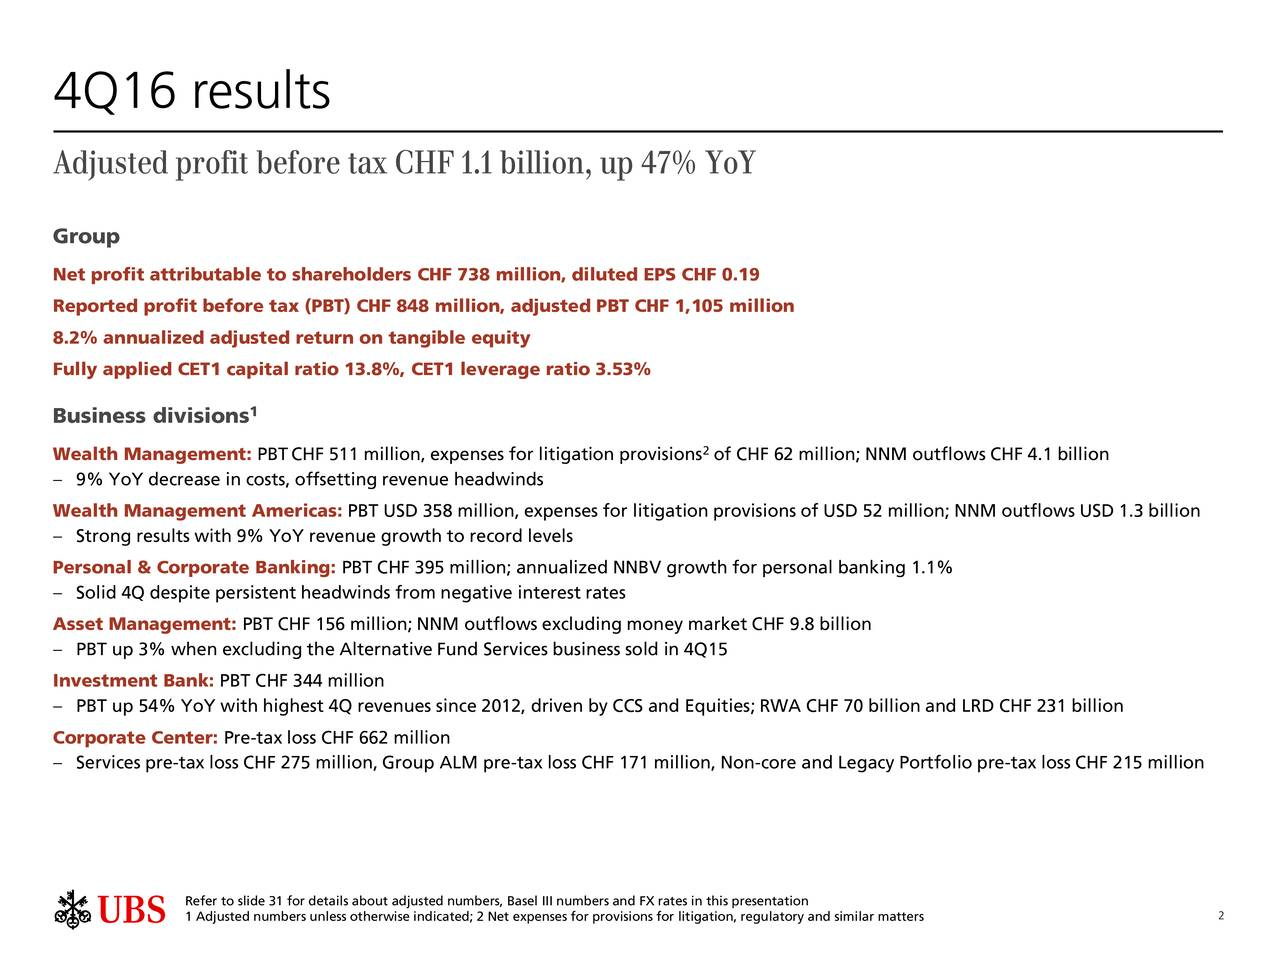 Adjusted profit before tax CHF 1.1 billion, up 47% YoY Group Net profit attributable to shareholders CHF 738 million, diluted EPS CHF 0.19 Reported profit before tax (PBT) CHF 848 million, adjusted PBT CHF 1,105 million 8.2% annualized adjusted return on tangible equity Fully applied CET1 capital ratio 13.8%, CET1 leverage ratio 3.53% Business divisions 1 Wealth Management: PBTCHF 511 million, expenses for litigation provisions of CHF 62 million; NNM outflows CHF 4.1 billion 9% YoY decrease in costs, offsetting revenue headwinds Wealth Management Americas: PBT USD 358 million, expenses for litigation provisions of USD 52 million; NNM outflows USD 1.3 billion Strong results with 9% YoY revenue growth to record levels Personal & Corporate Banking: PBT CHF 395 million; annualized NNBV growth for personal banking 1.1% Solid 4Q despite persistent headwinds from negative interest rates Asset Management: PBT CHF 156 million; NNM outflows excluding money market CHF 9.8 billion PBT up 3% when excluding the Alternative Fund Services business sold in 4Q15 Investment Bank: PBT CHF 344 million PBT up 54% YoY with highest 4Q revenues since 2012, driven by CCS and Equities; RWA CHF 70 billion and LRD CHF 231 billion Corporate Center: Pre-tax loss CHF 662 million Services pre-tax loss CHF 275 million, Group ALM pre-tax loss CHF 171 million, Non-core and Legacy Portfolio pre-tax loss CHF 215 million Refer to slide 31 for details about adjusted numbers, Basel III numbers and FX rates in this presentation 1 Adjusted numbers unless otherwise indicated; 2 Net expenses for provisions for litigation, regulatory and similar matters